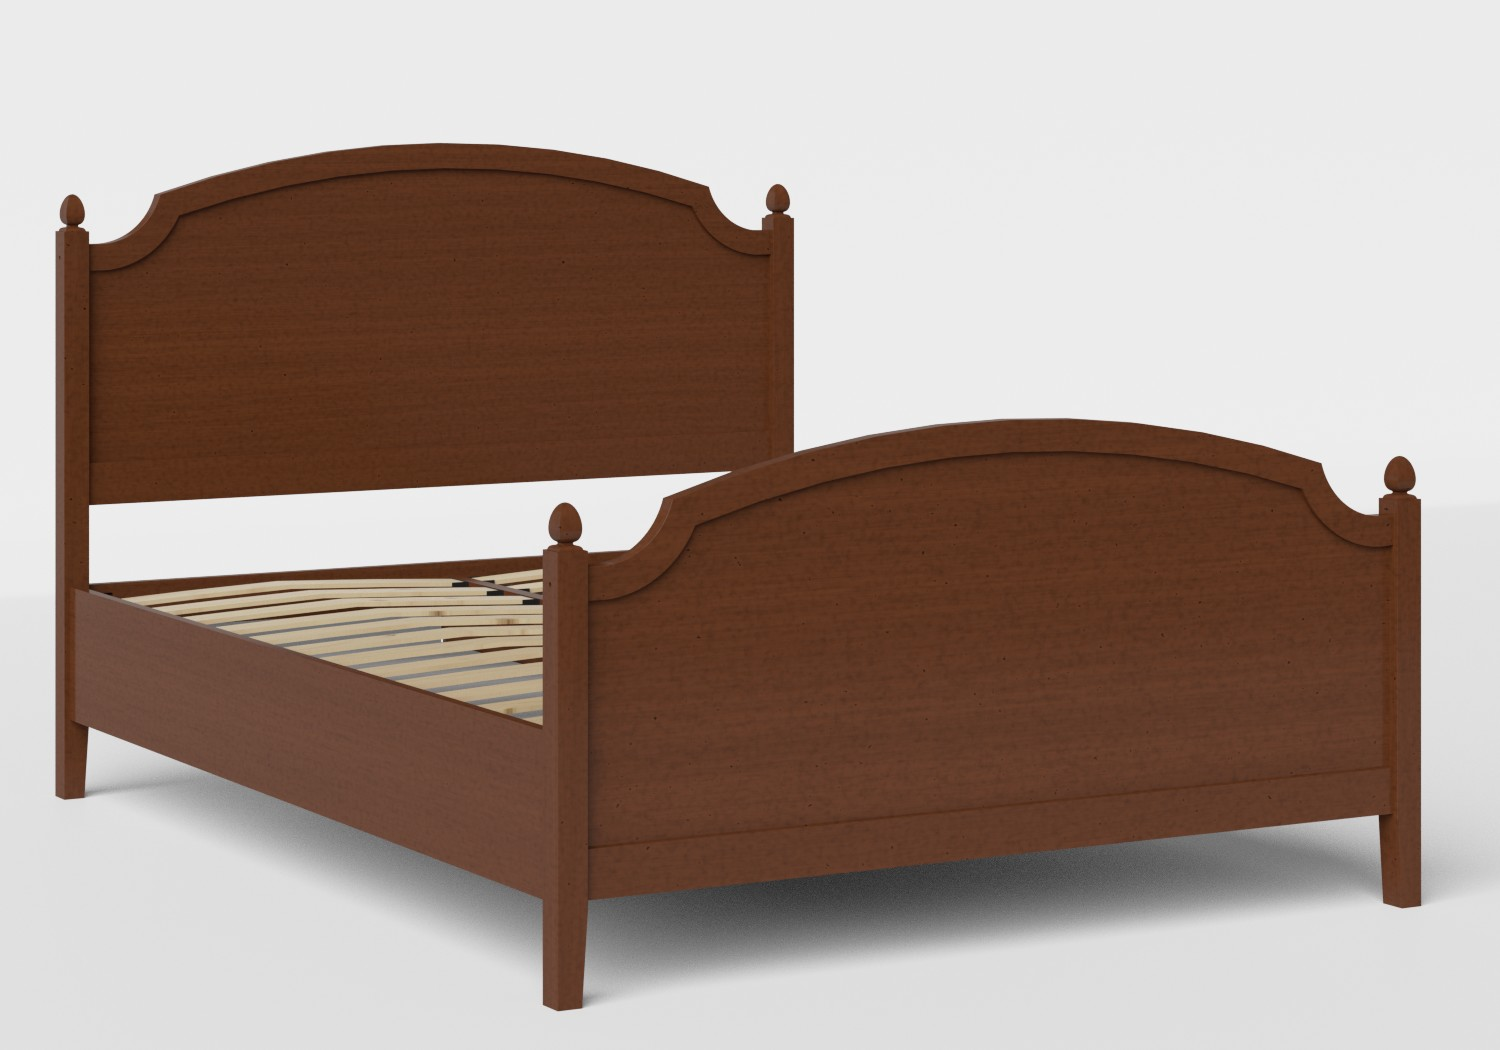 Kipling Wood Bed in Dark Cherry shown with slatted frame